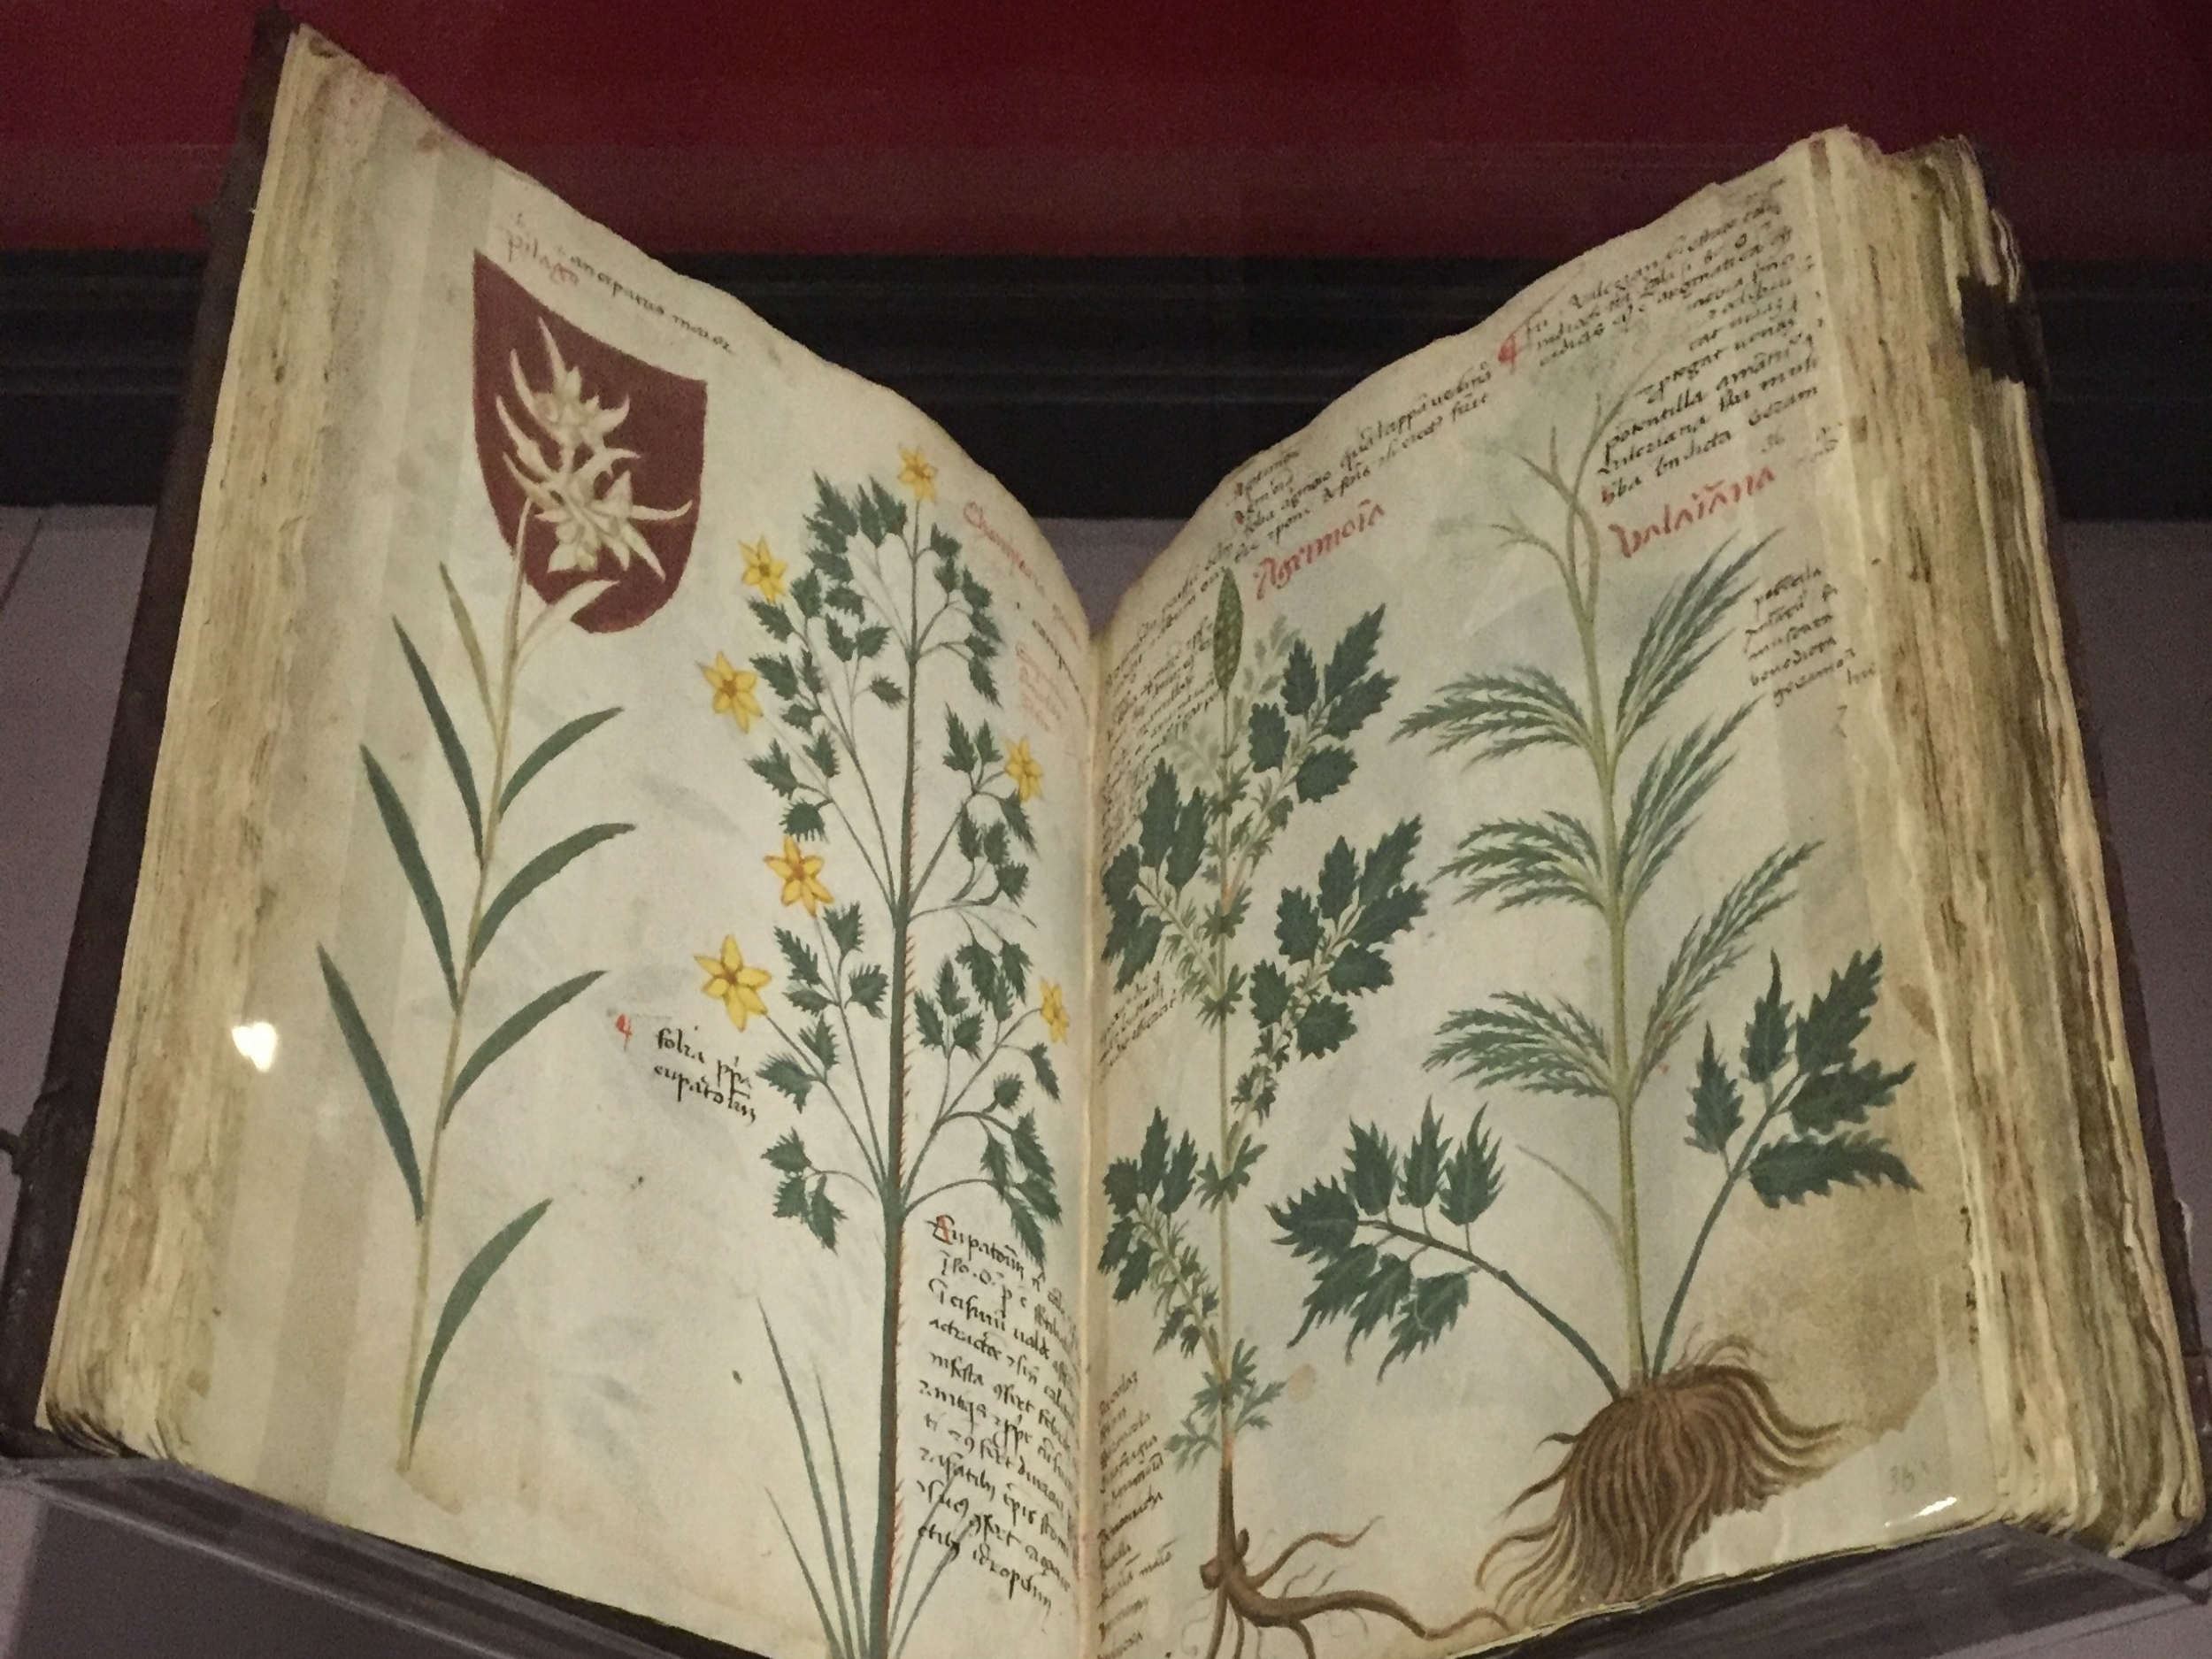 Copy of Medicinal Plant Book - London, England